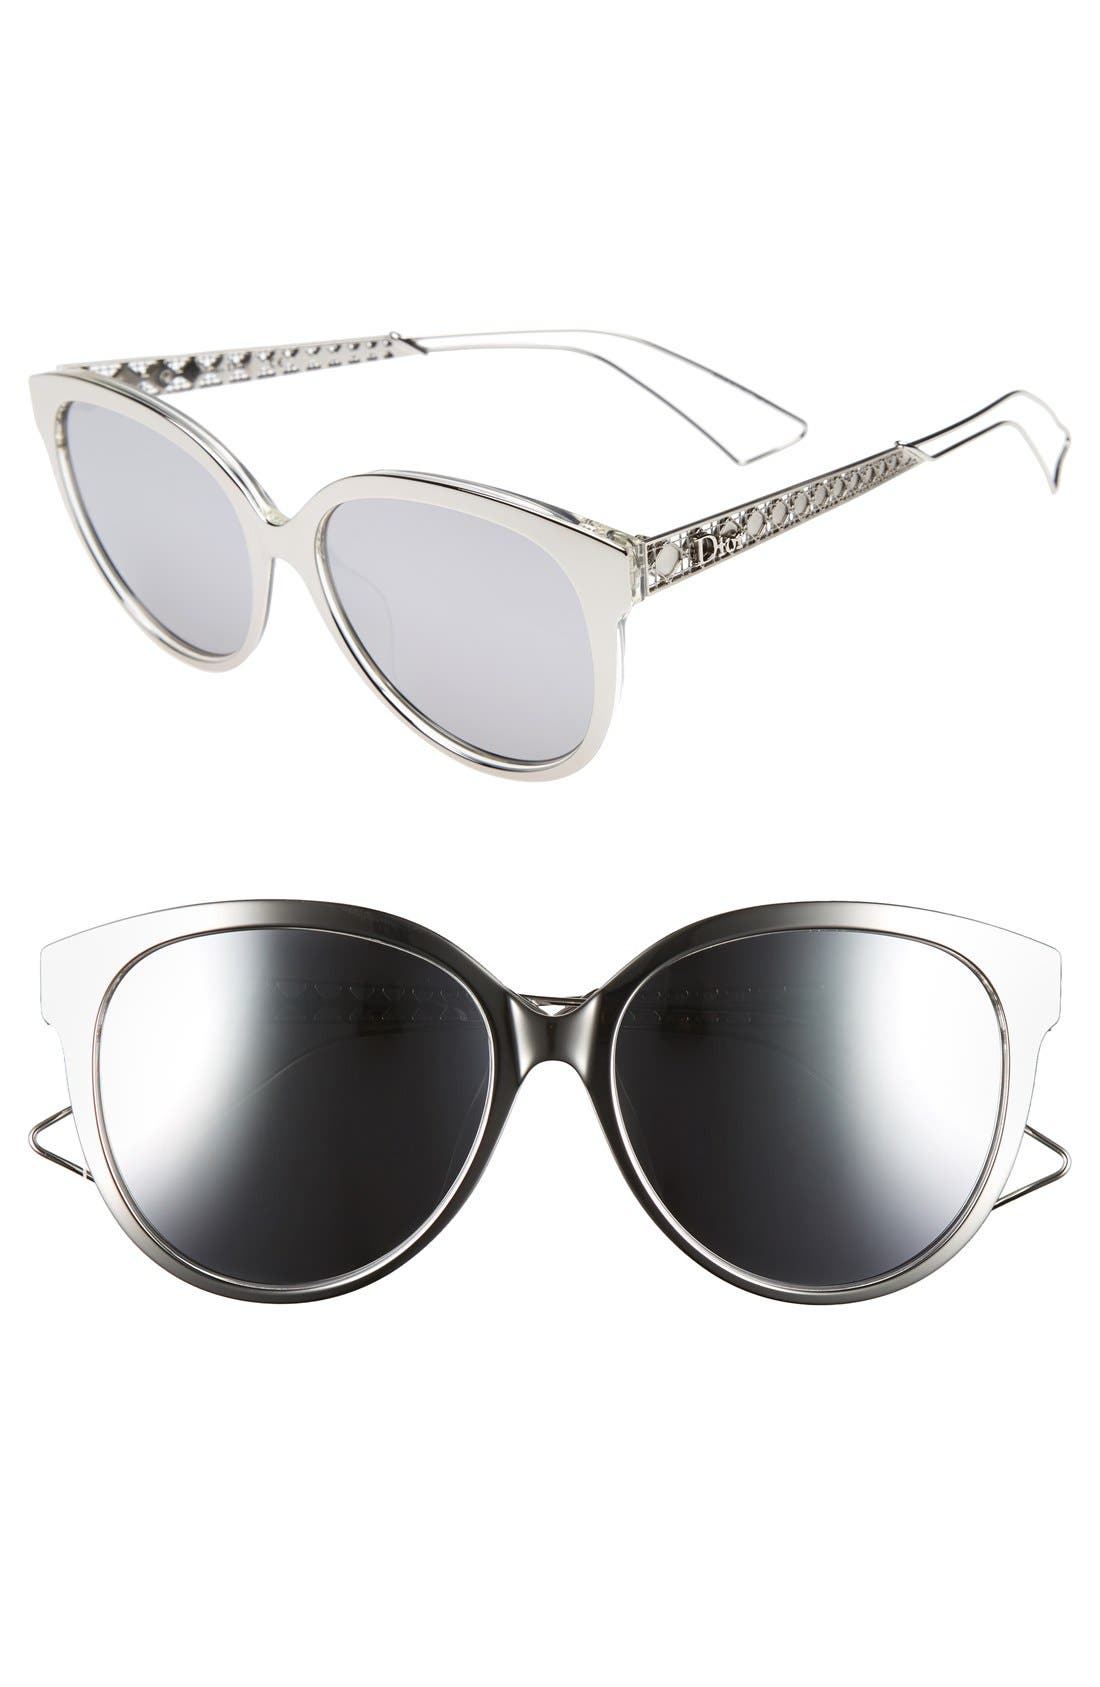 Alternate Image 1 Selected - Dior Diorama 2 56mm Cat Eye Sunglasses